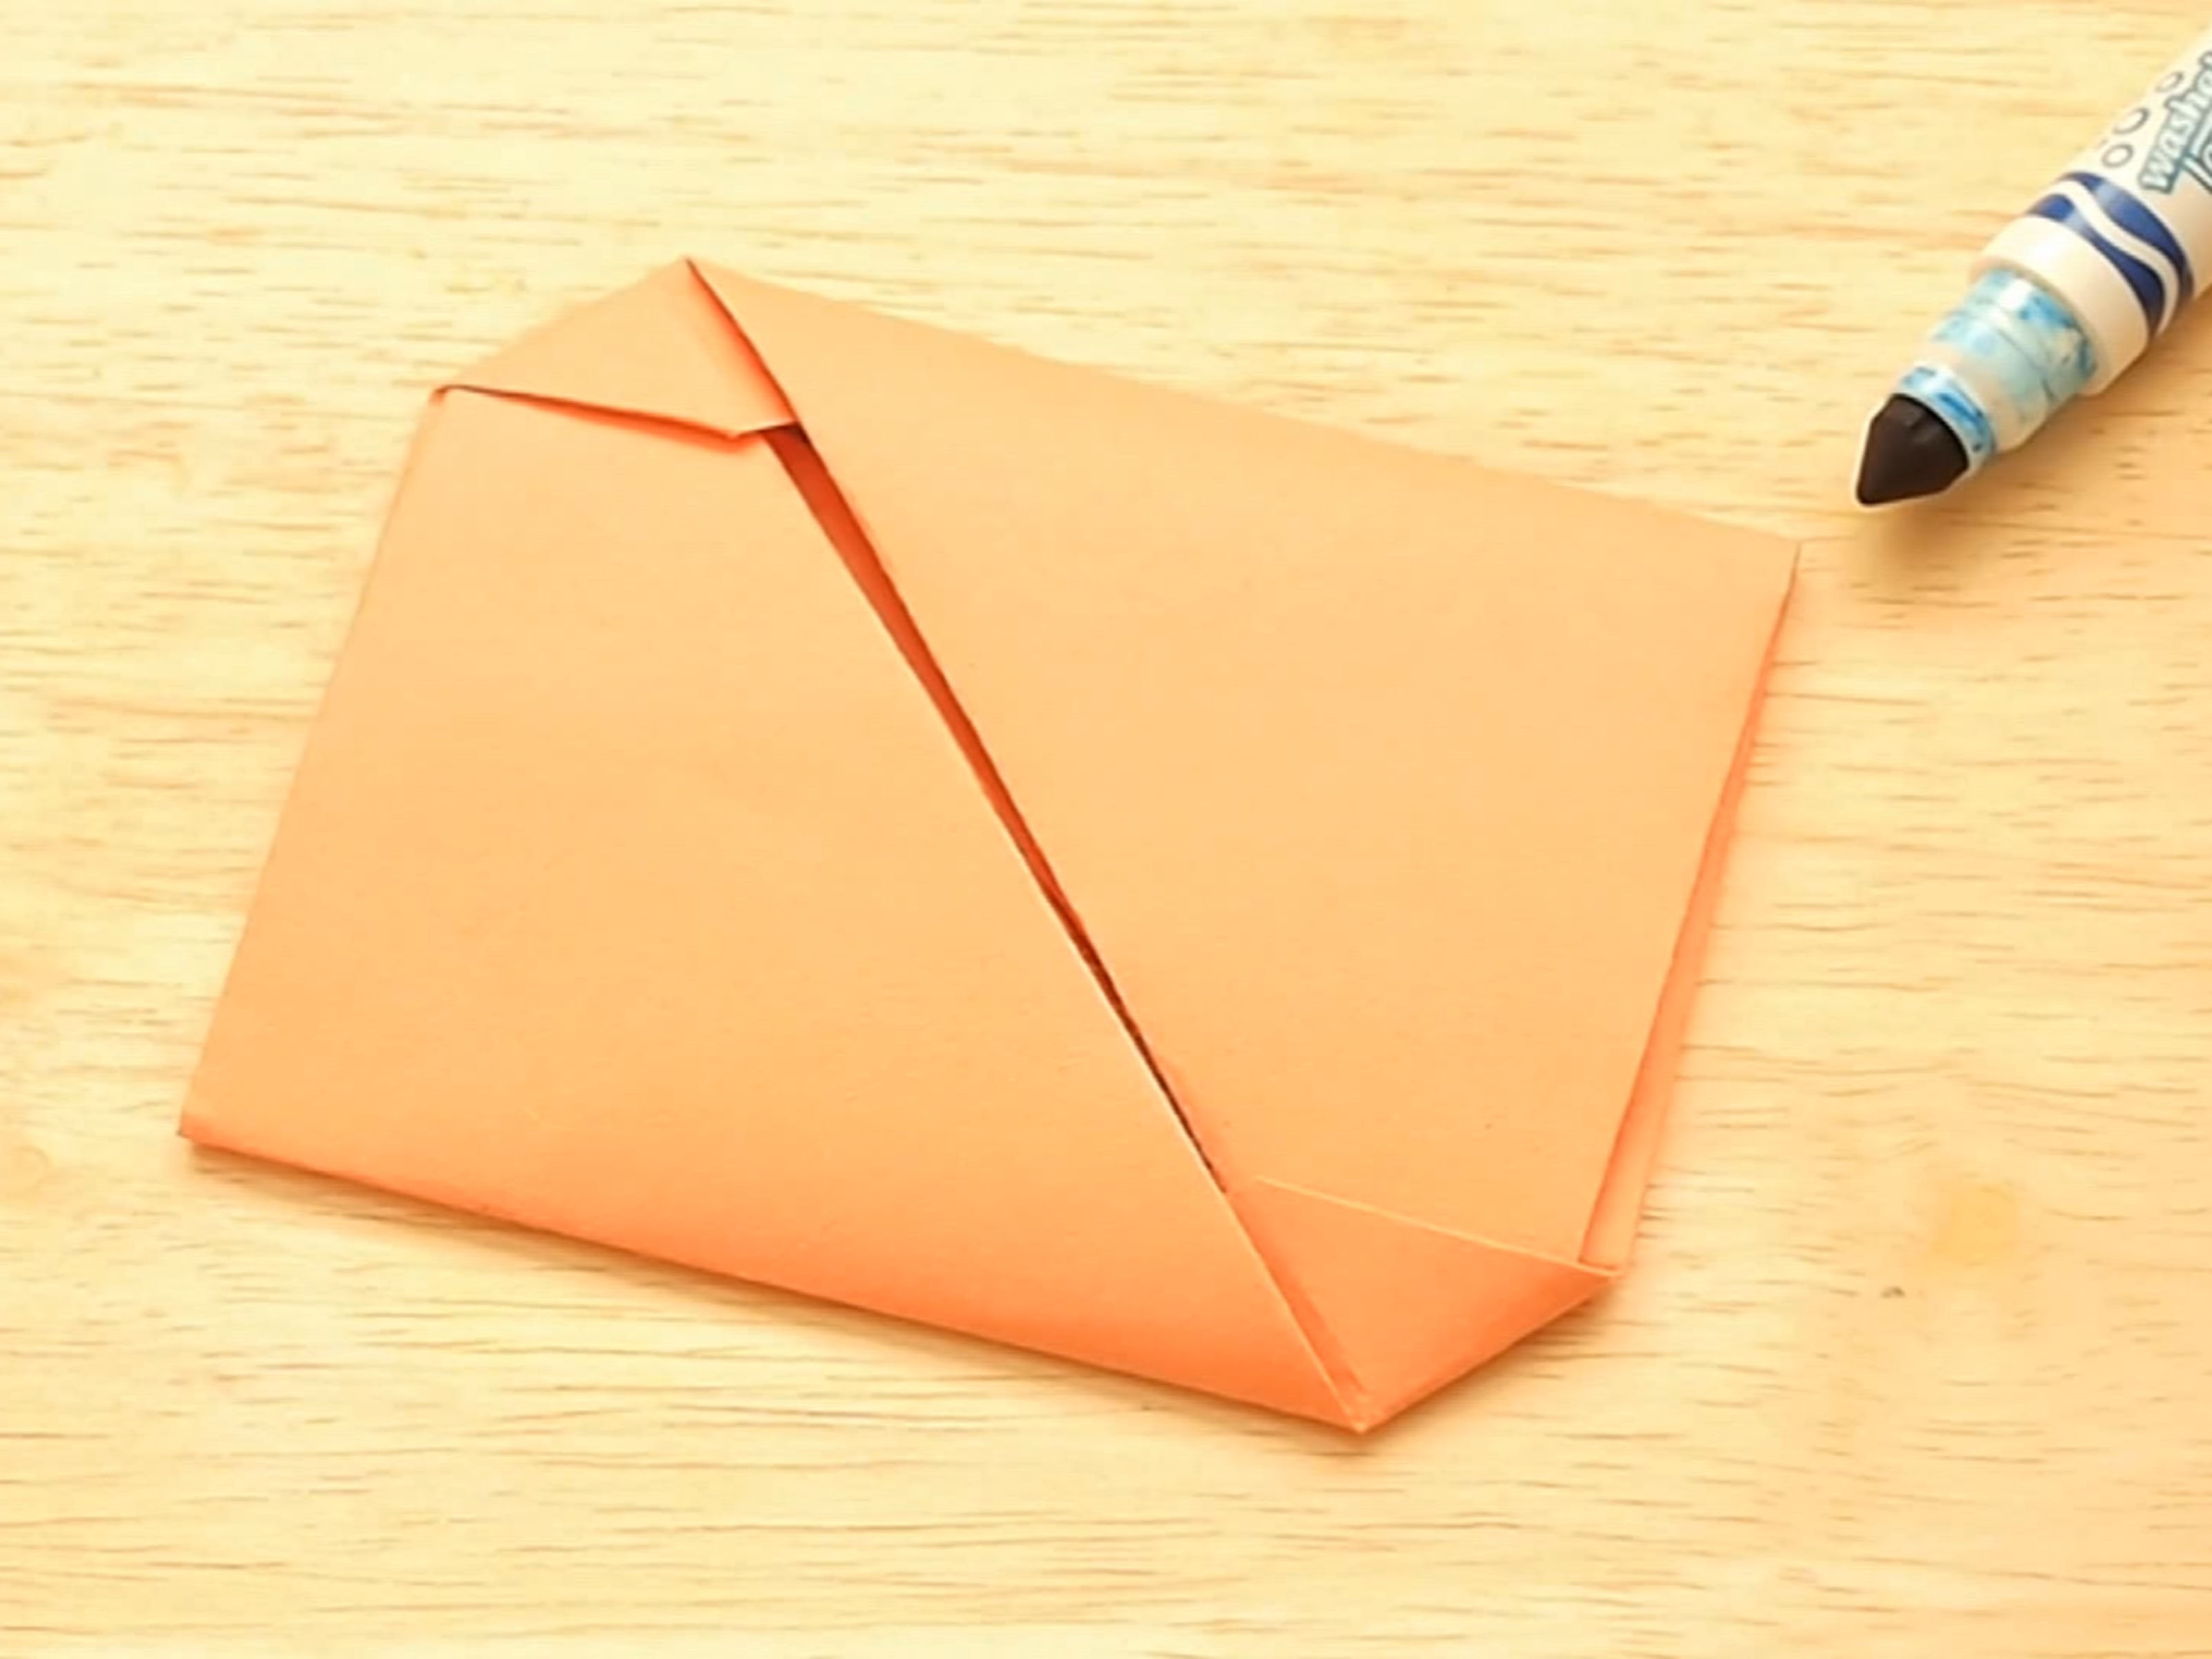 Envelope Origami Letters How To Fold An Origami Envelope With Pictures Wikihow